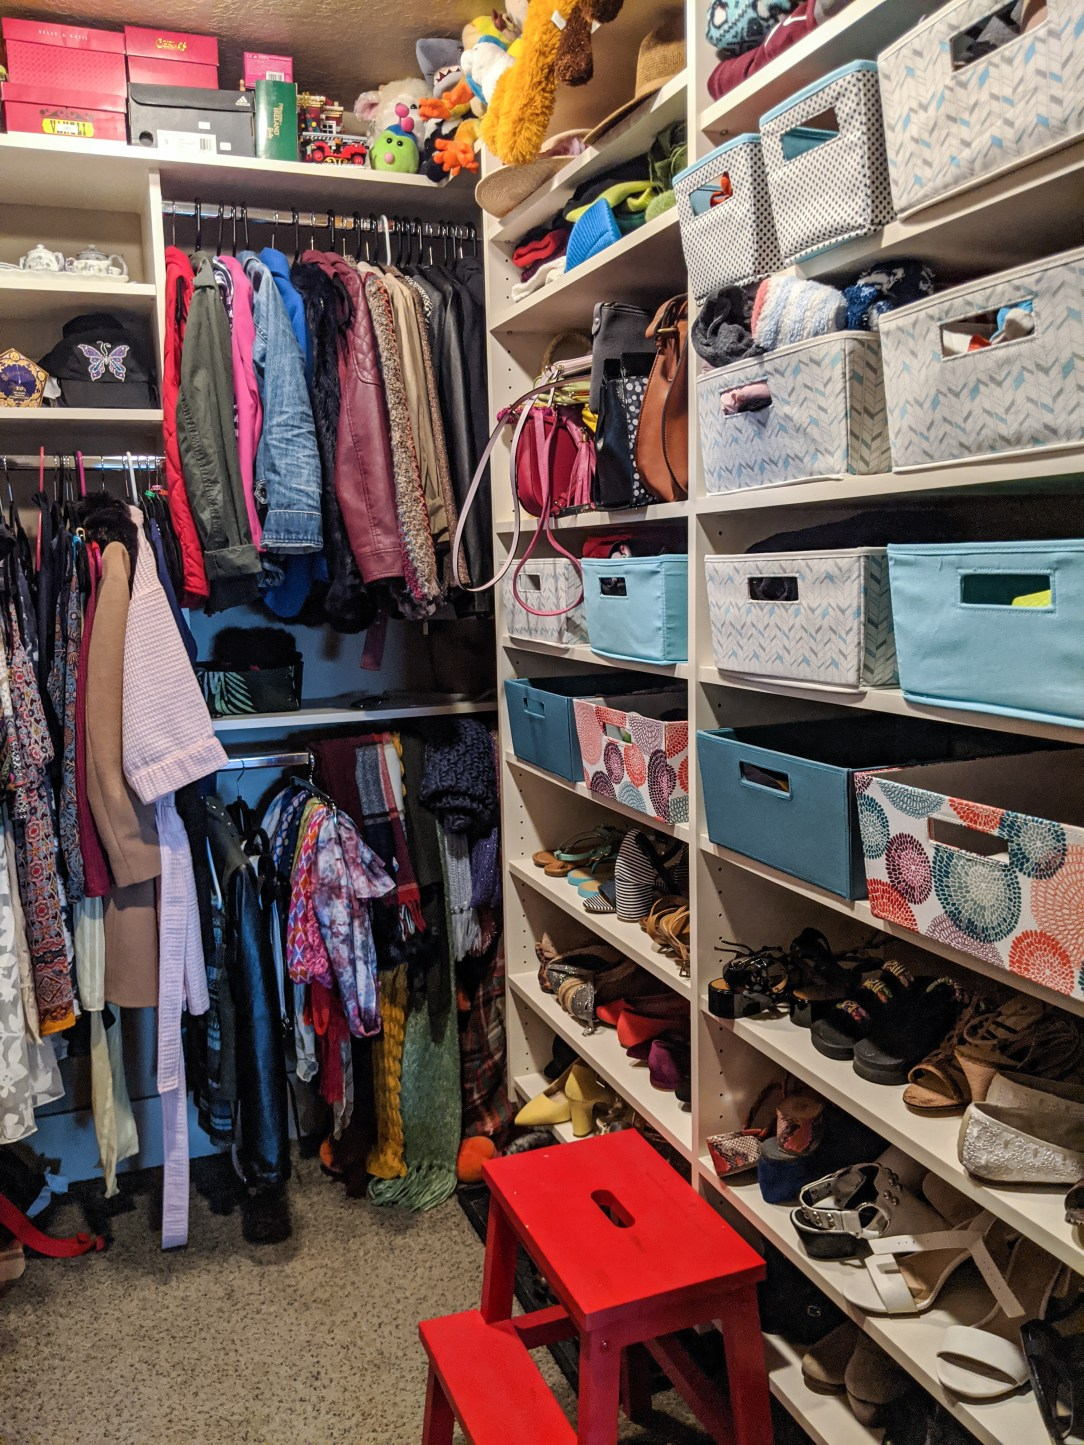 closet-shelves-fabric-bins-shoes